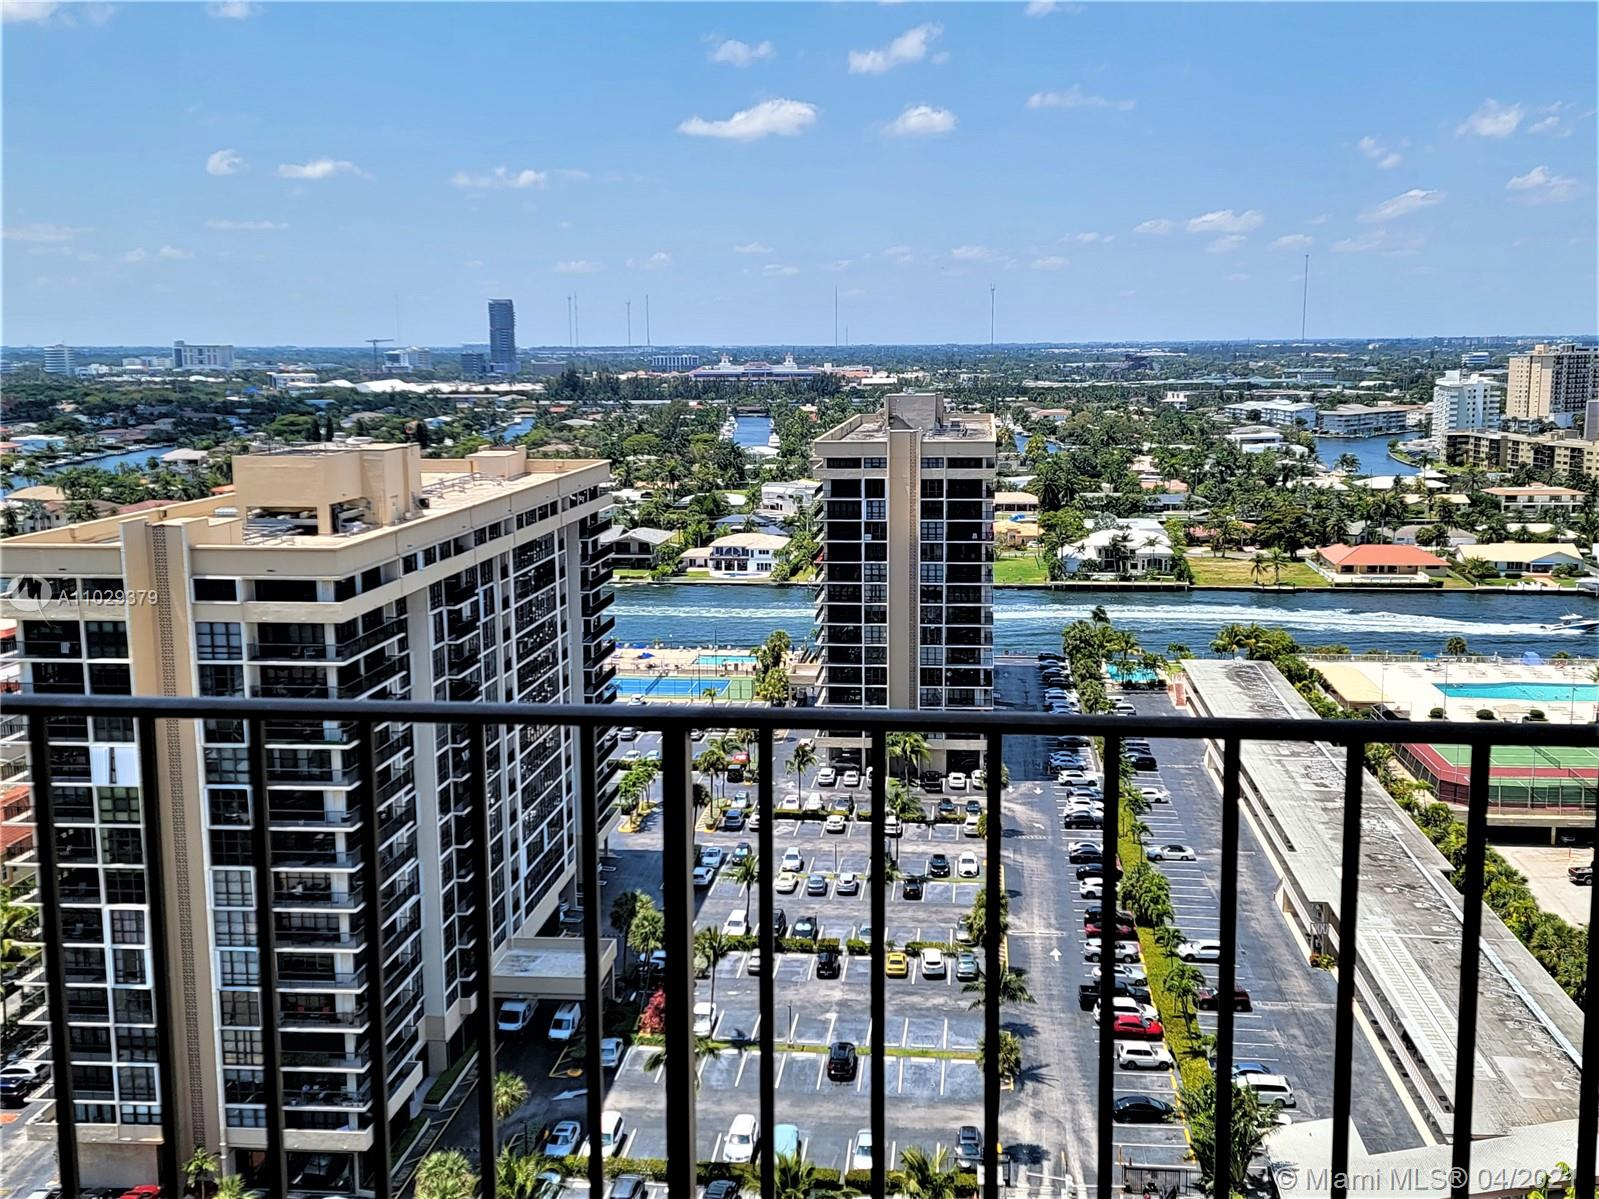 Photo of 2030 Ocean Dr #2026, Hallandale Beach, Florida, 33009 - Lare Balconies Like No Other Condo In The Area!